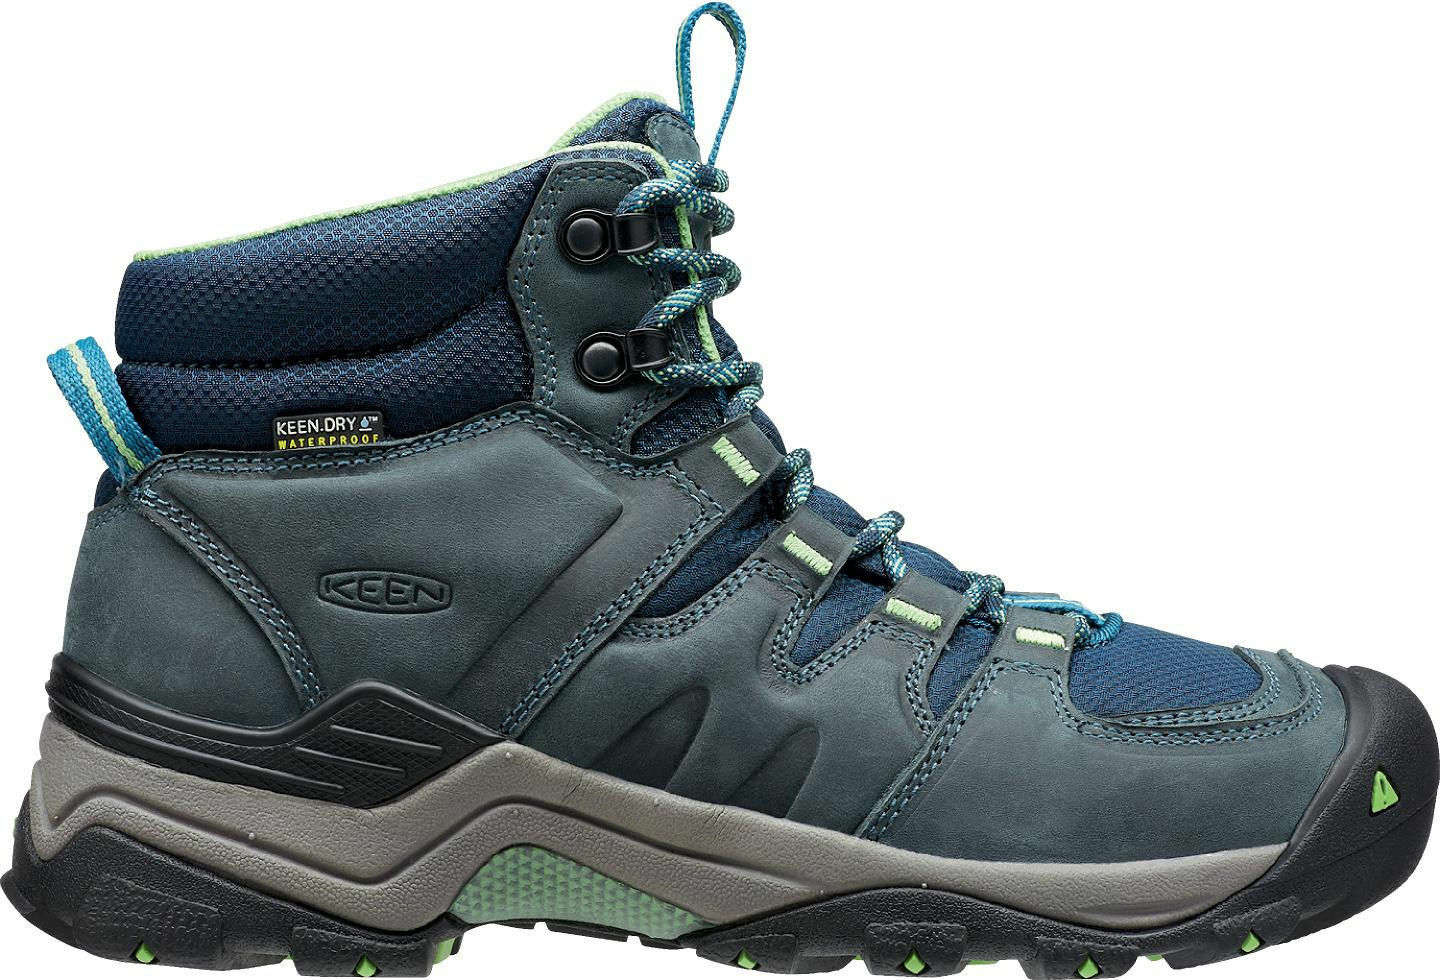 Keen Womannen's Gypsum II Mid WP Hiking laarzen Midnight Navy  Opaline 1015355 []